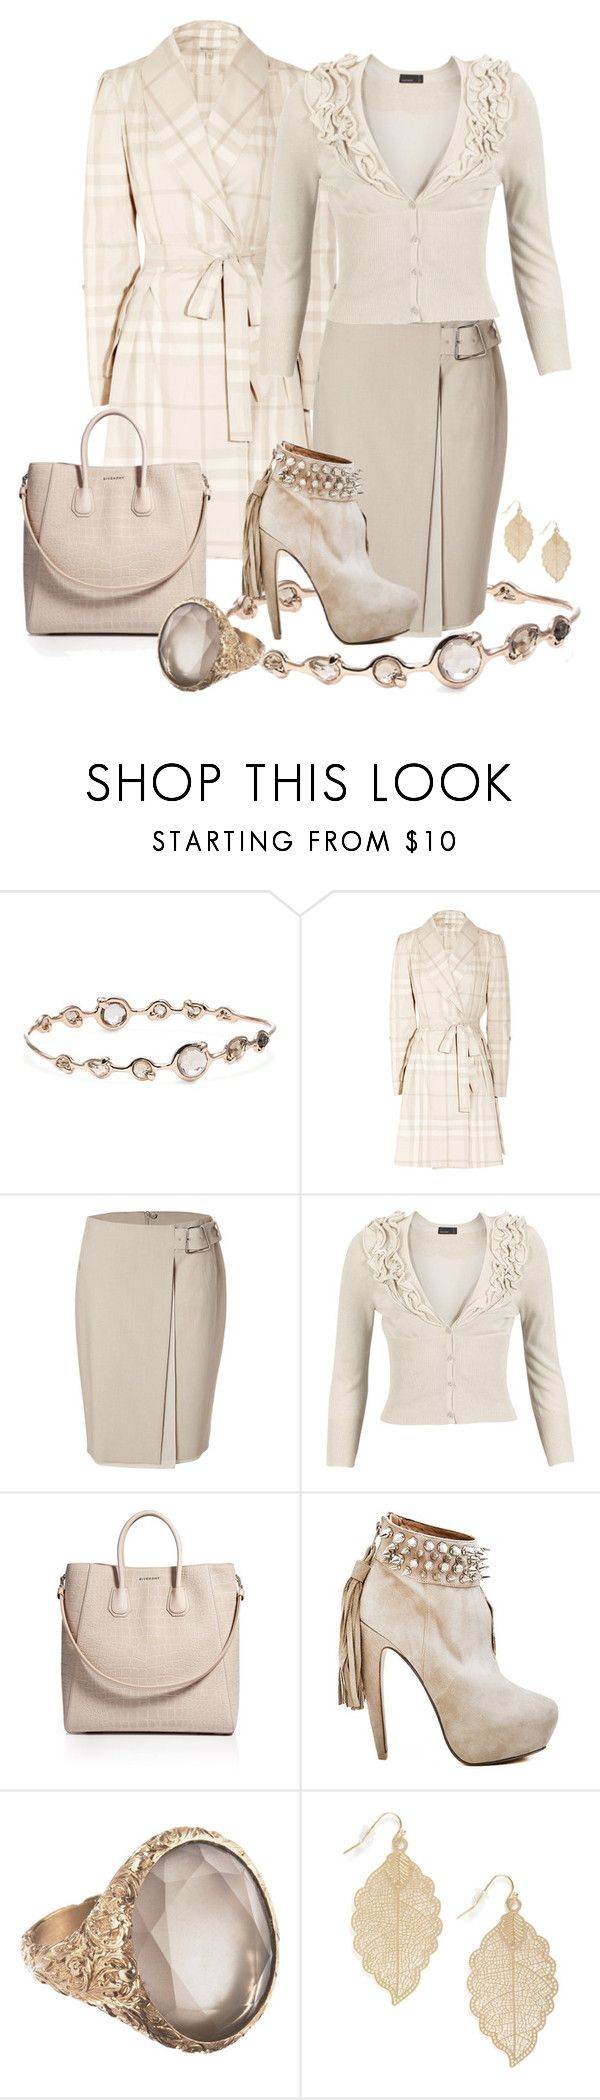 """""""Sand"""" by tracireuer ❤ liked on Polyvore featuring Ippolita, Burberry, Akris, Vero Moda, Givenchy and Anaconda"""